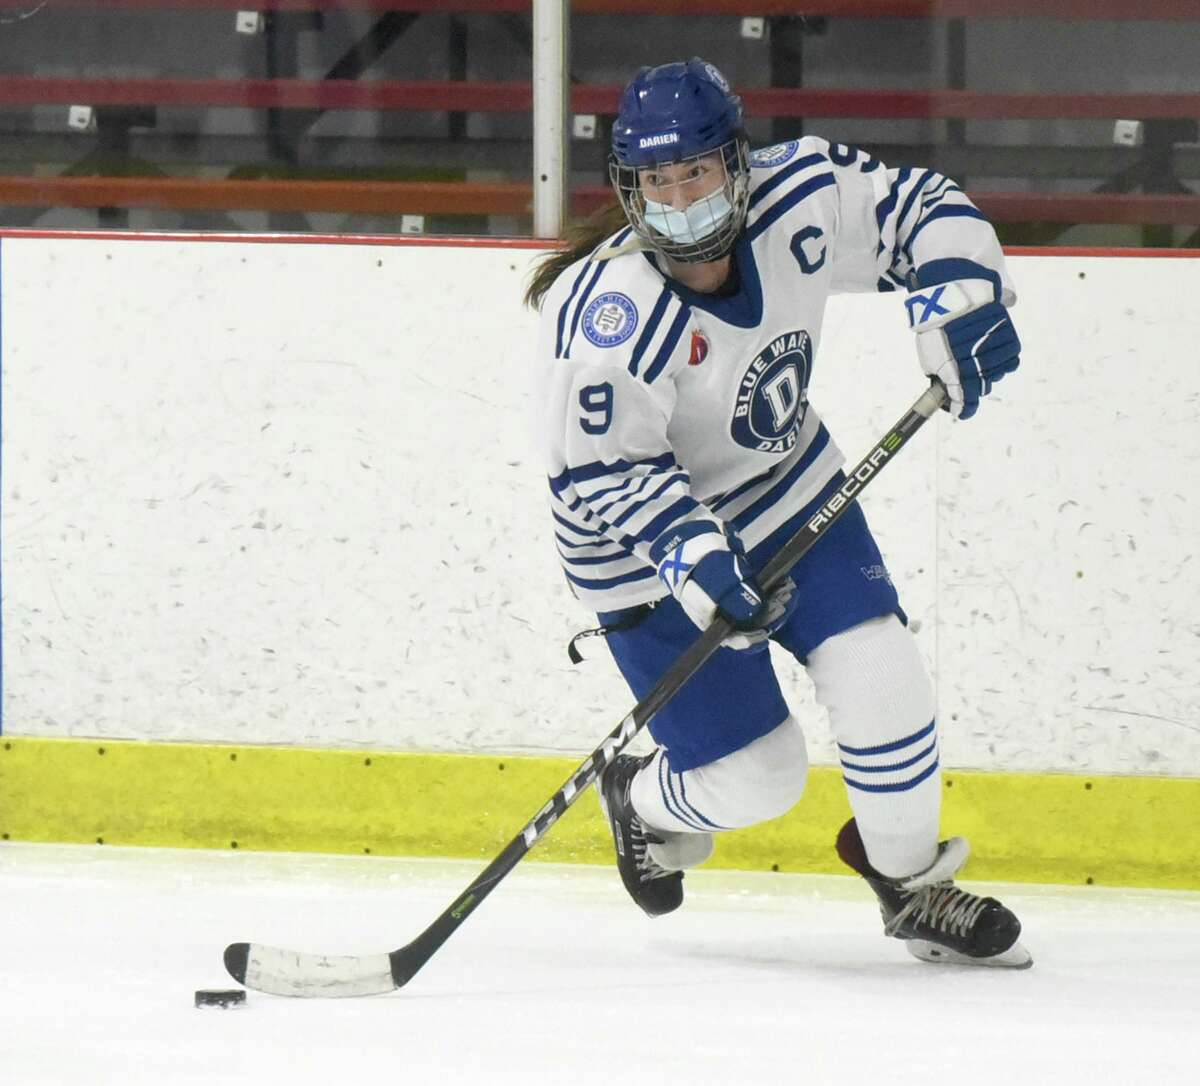 Darien senior Kate Bellissimo controls the puck against New Canaan at the Darien Ice House on March 6.